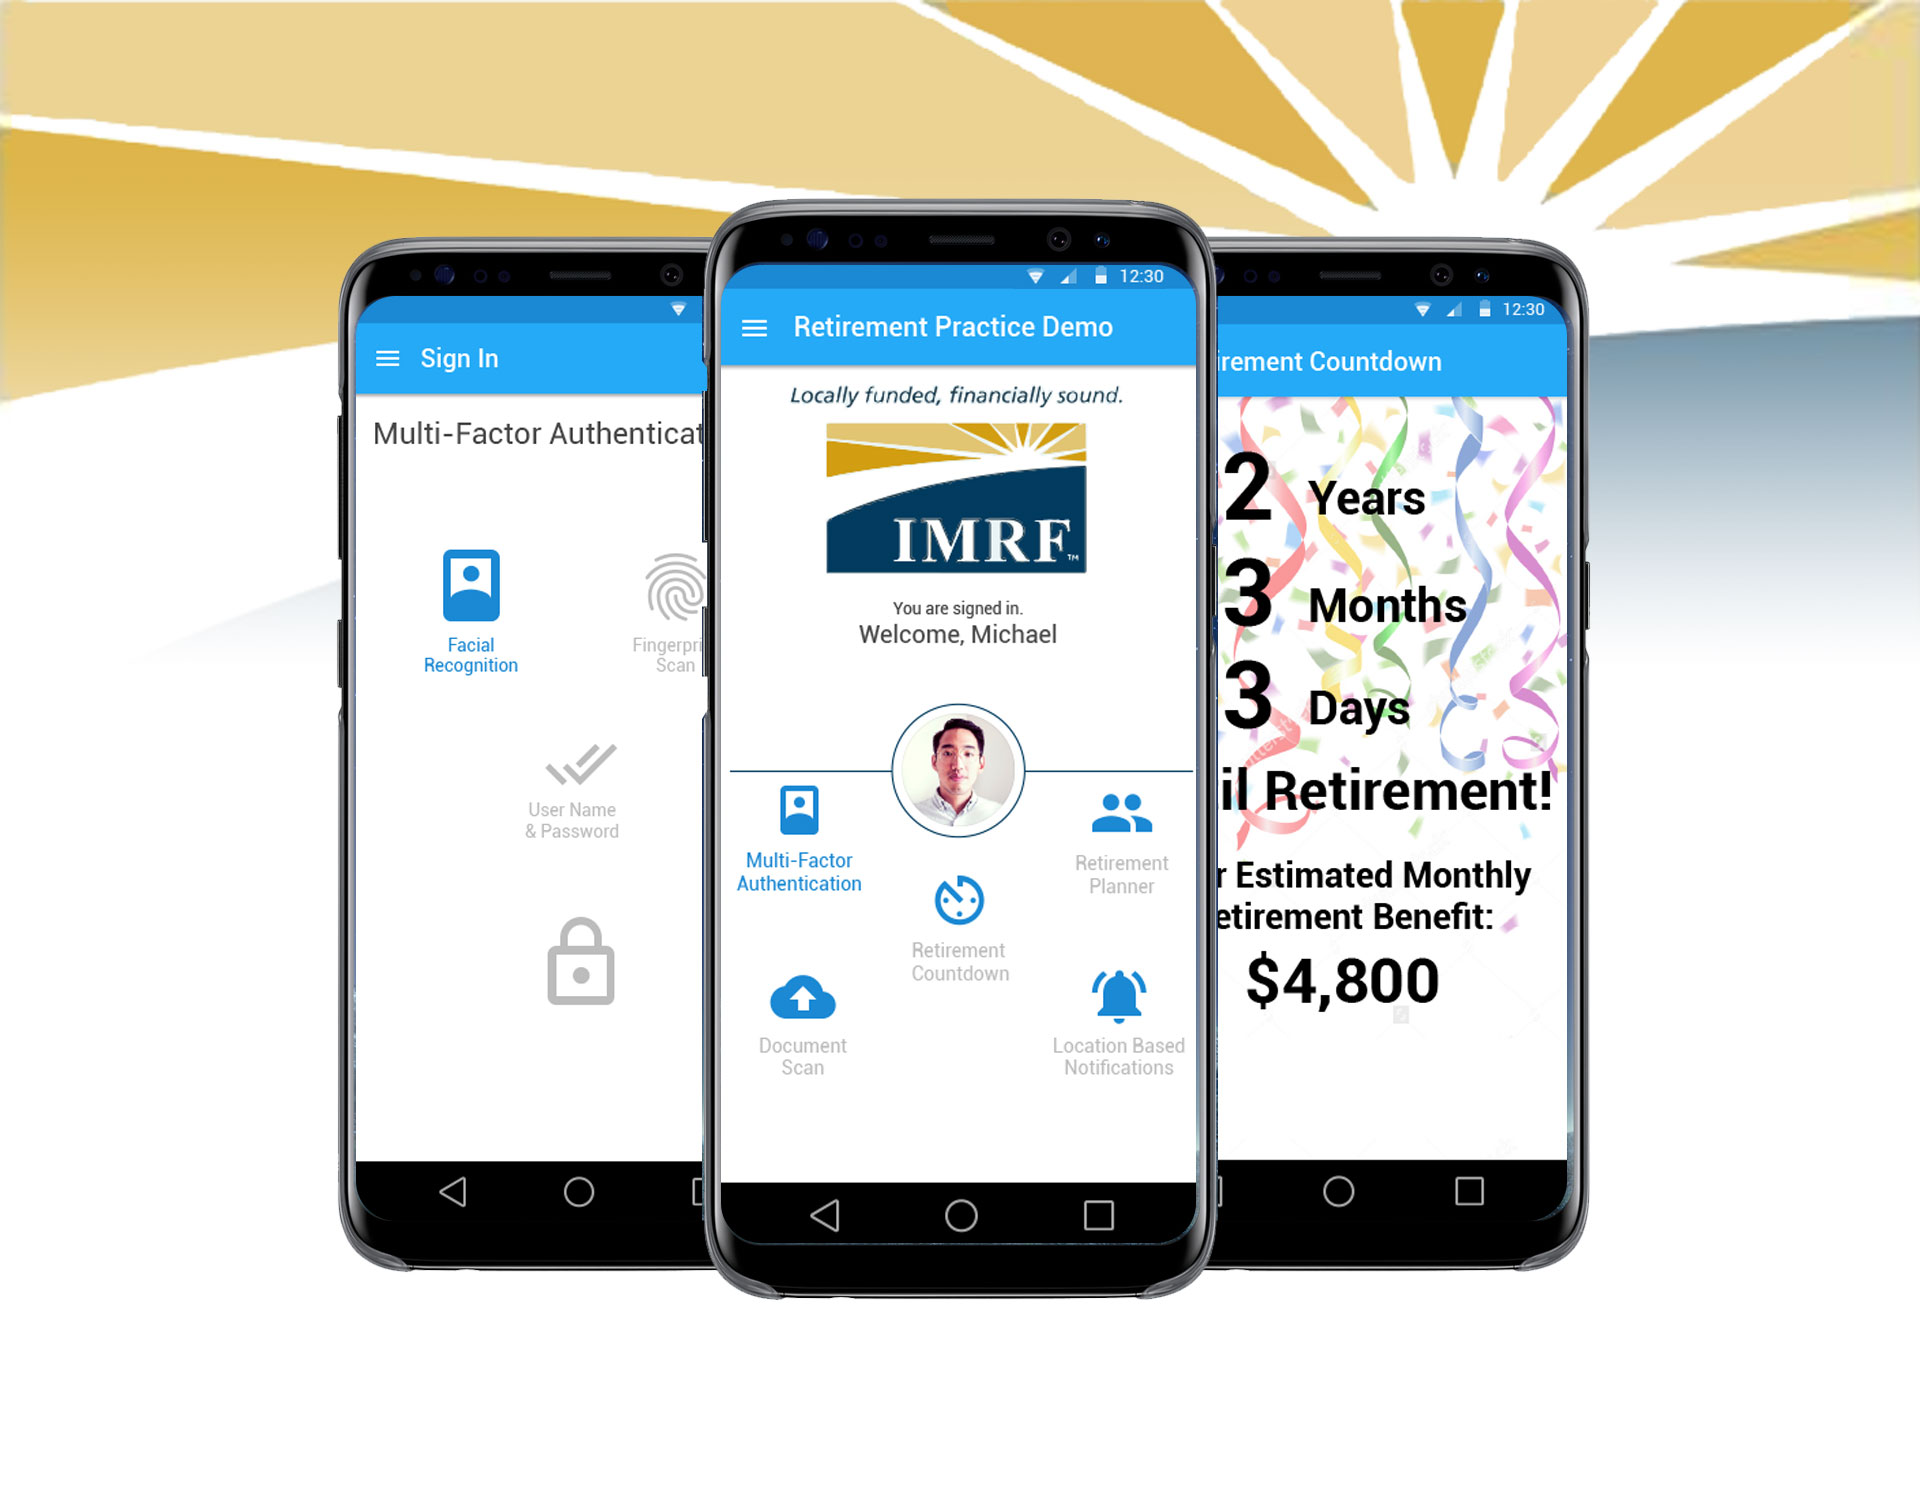 Illinois Municipal Retirement Fund - Native Mobile App Design for Android